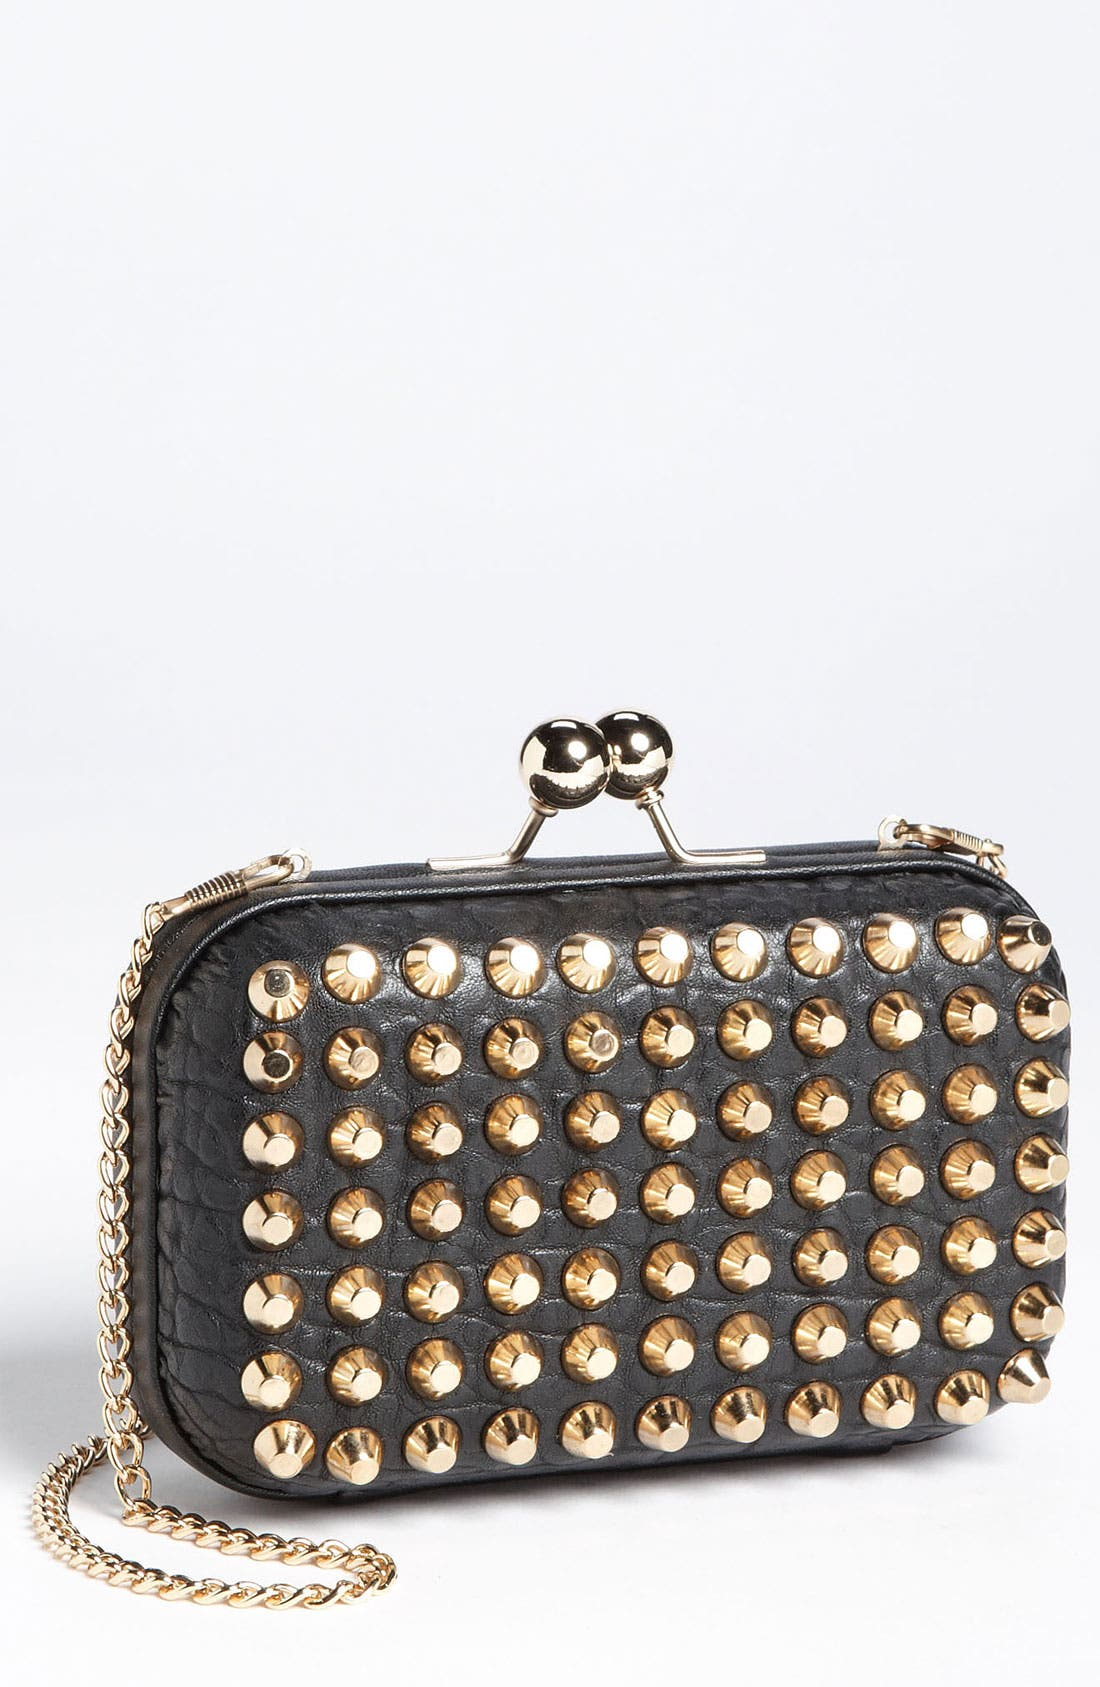 Main Image - Street Level Studded Pillbox Clutch